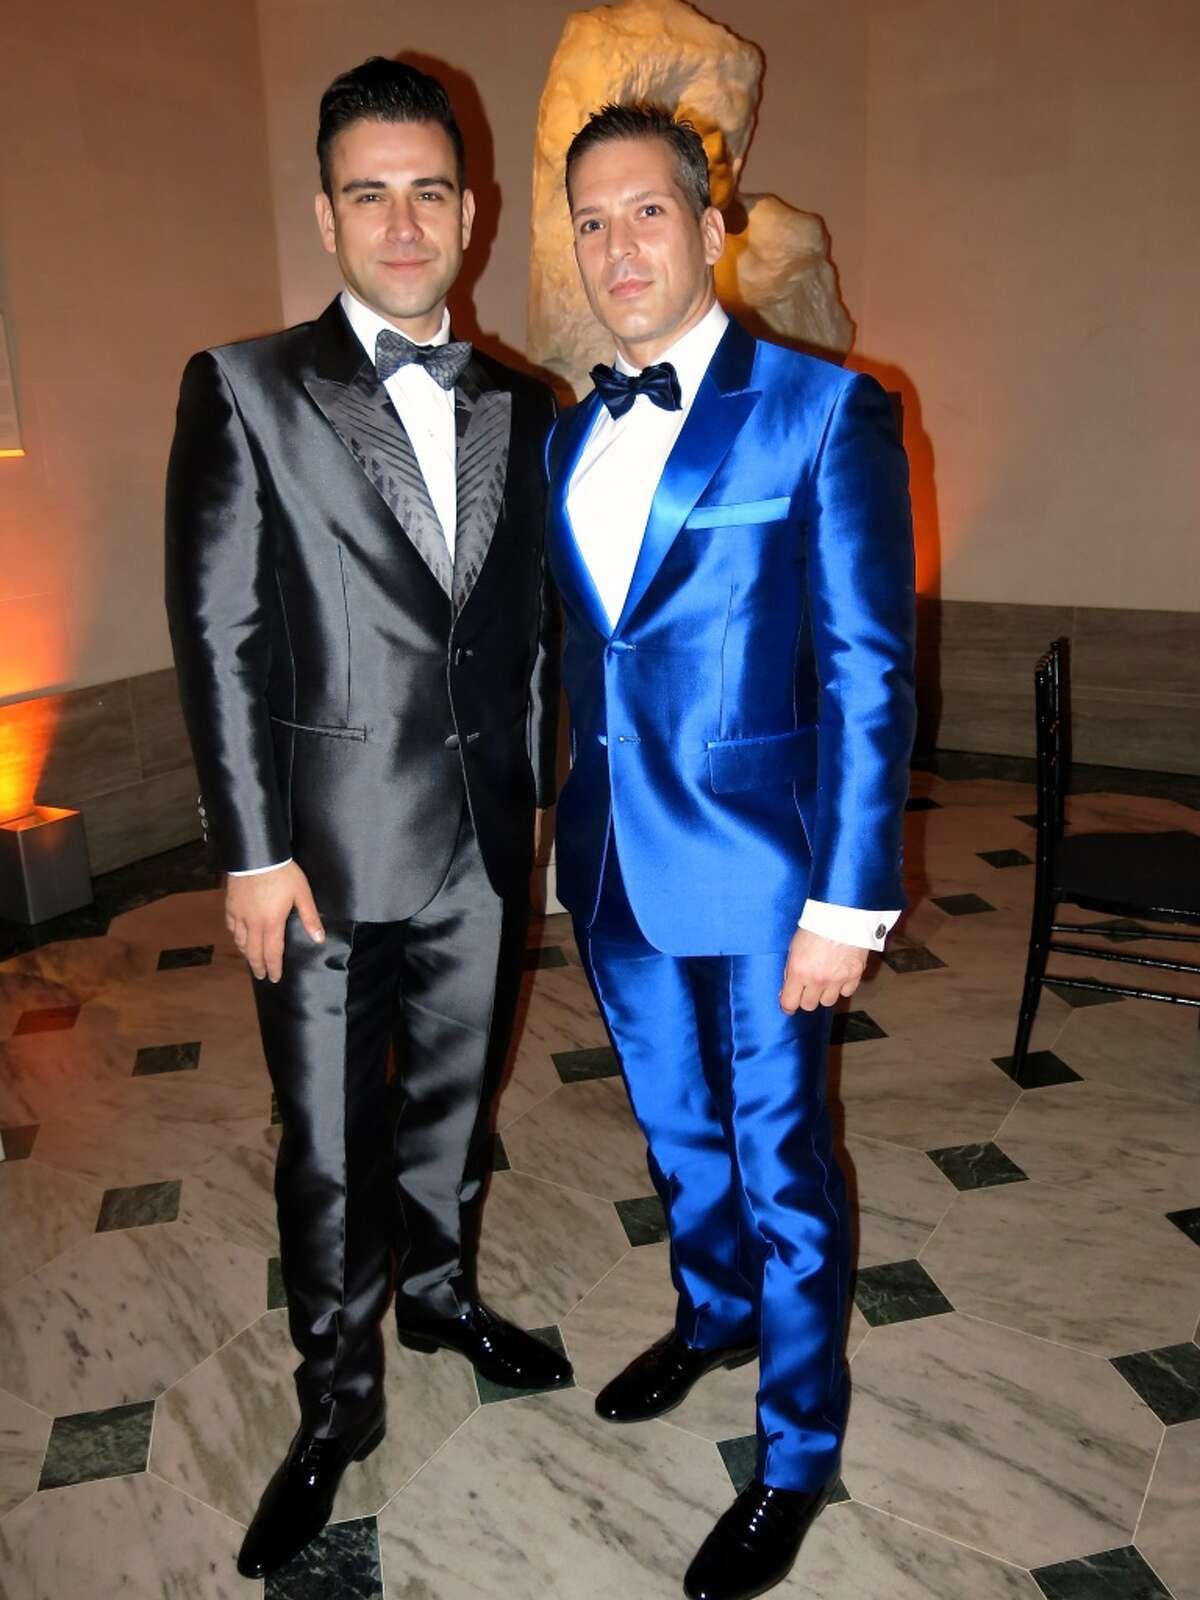 Designer Rubin Singer (at left) designed a number of gala gowns as well as this blue tux (ar right) worn by Carlos Melia, a a travel blogger, LGBT activist and winner of Mr. Gay Argentina 2008.